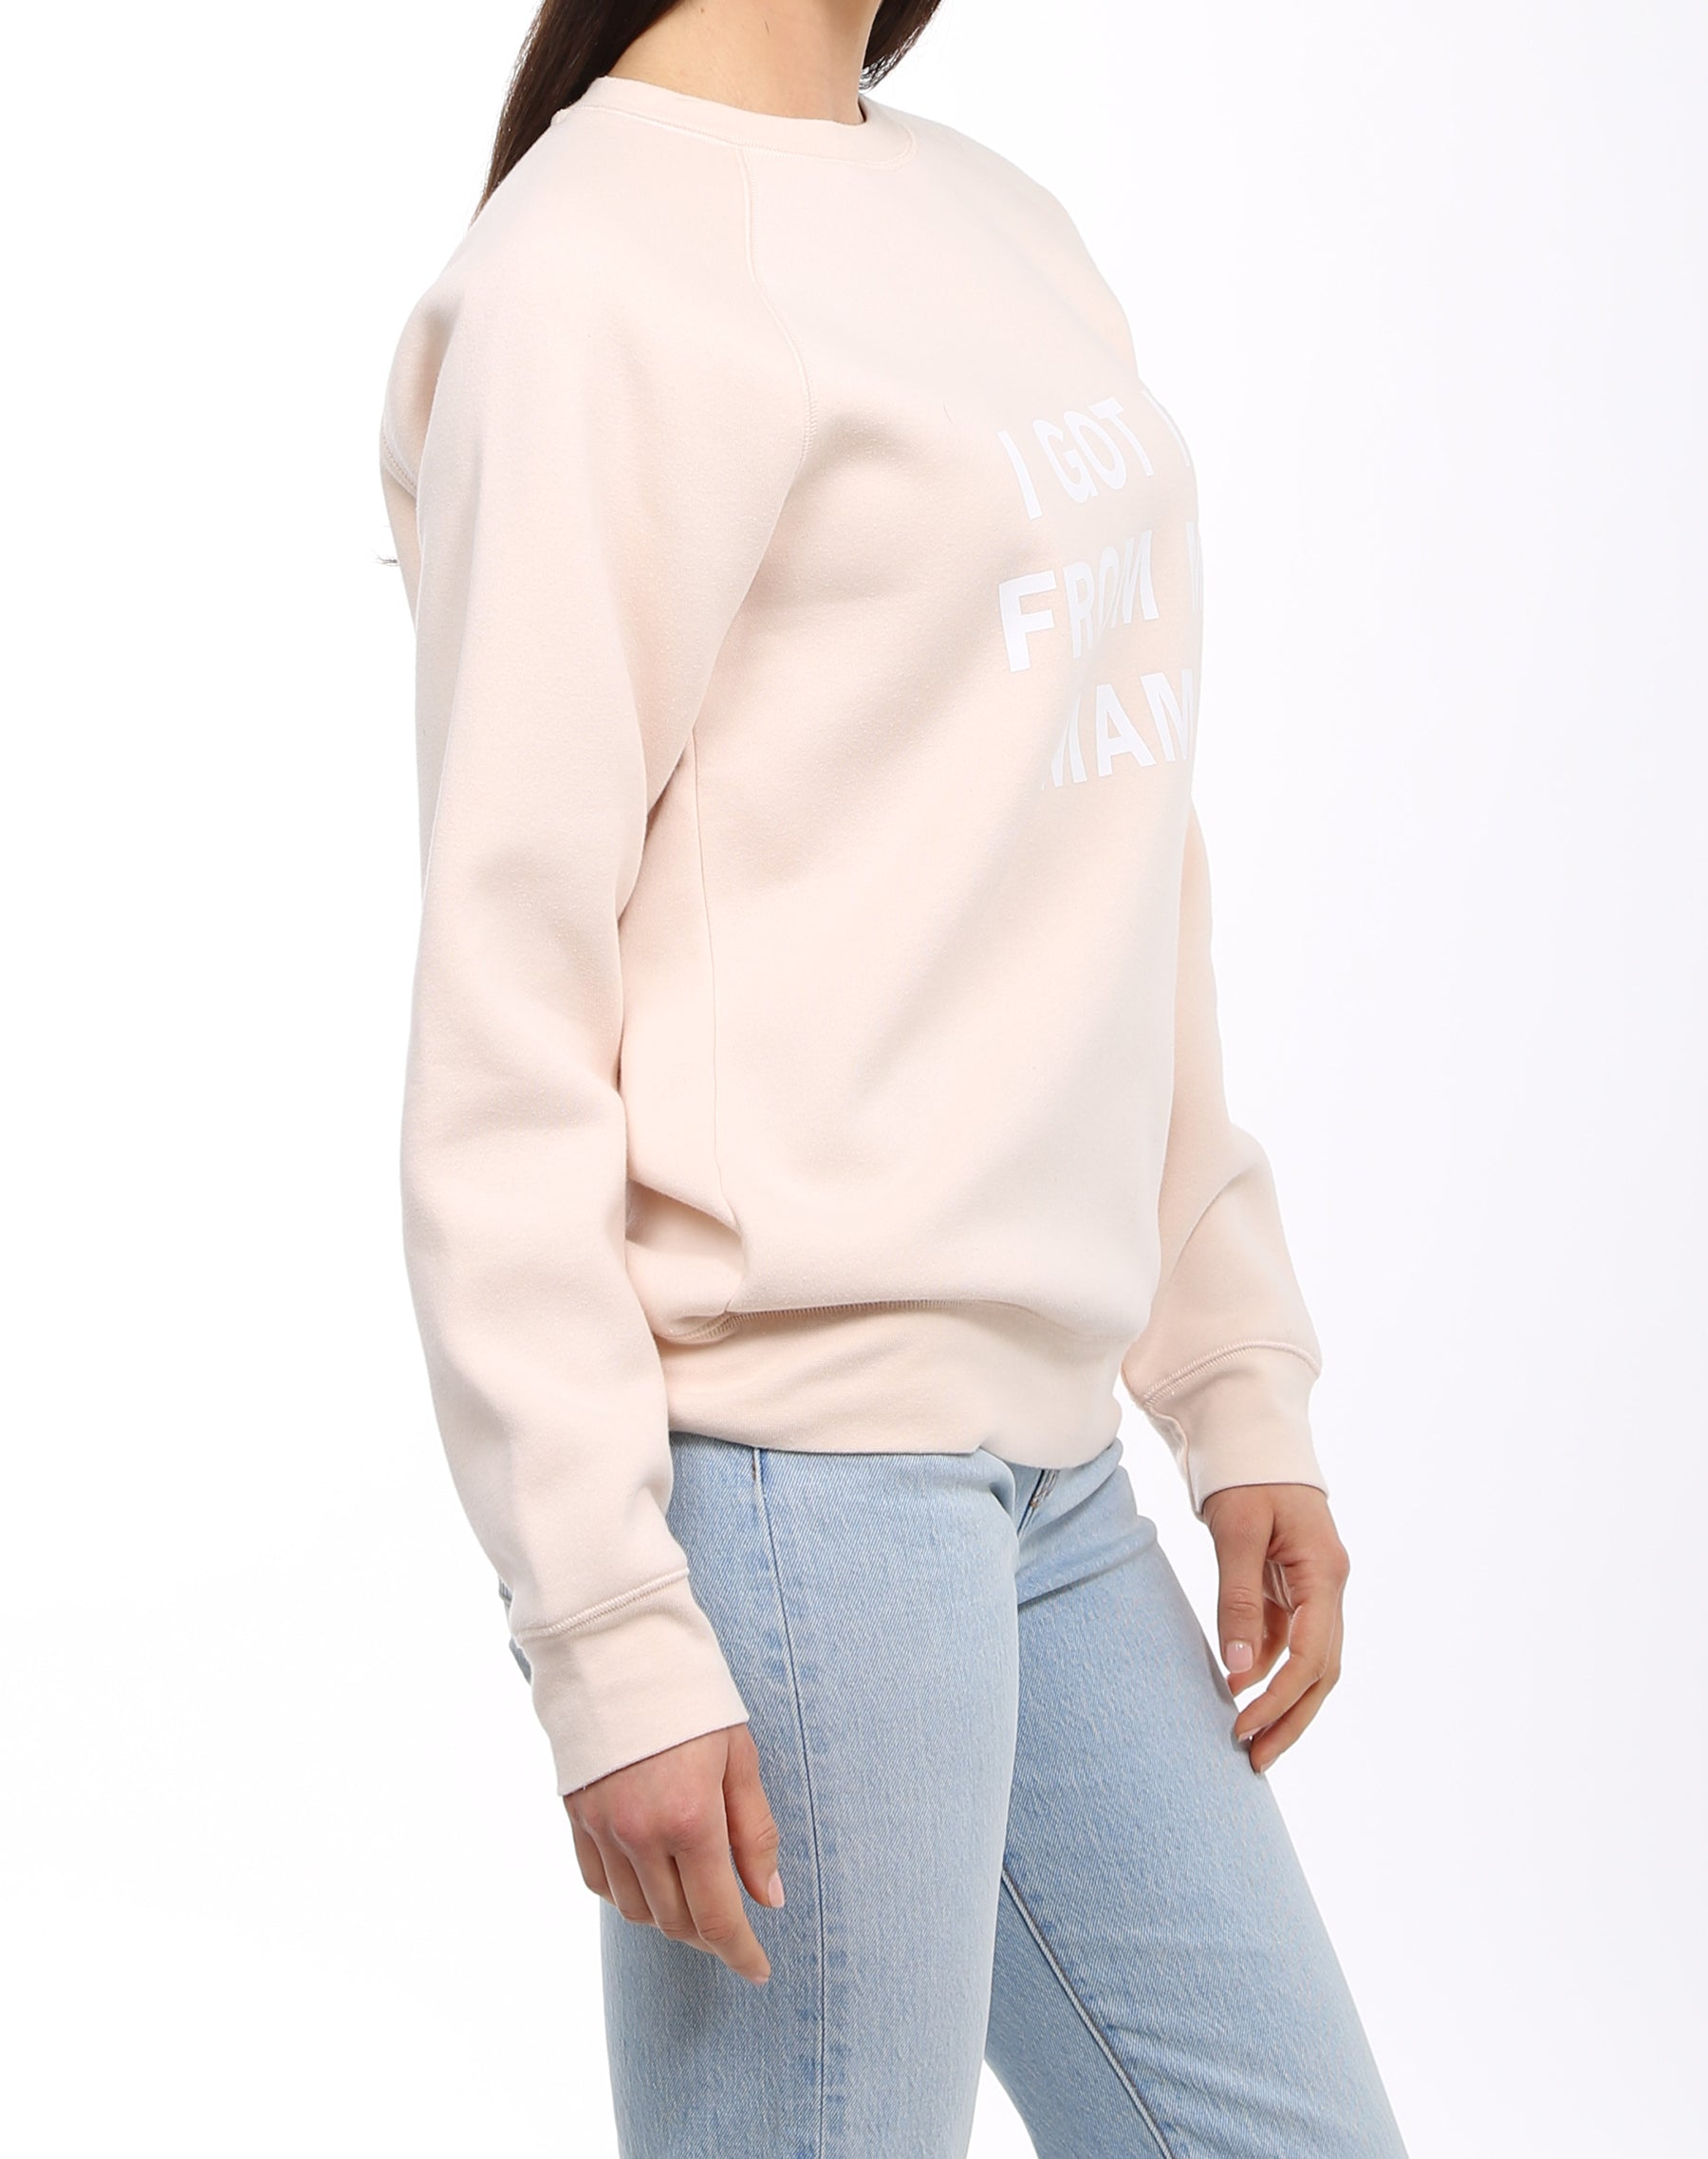 Side photo of the I Got it From My Mama classic crew neck sweatshirt in peach crush by Brunette the Label.